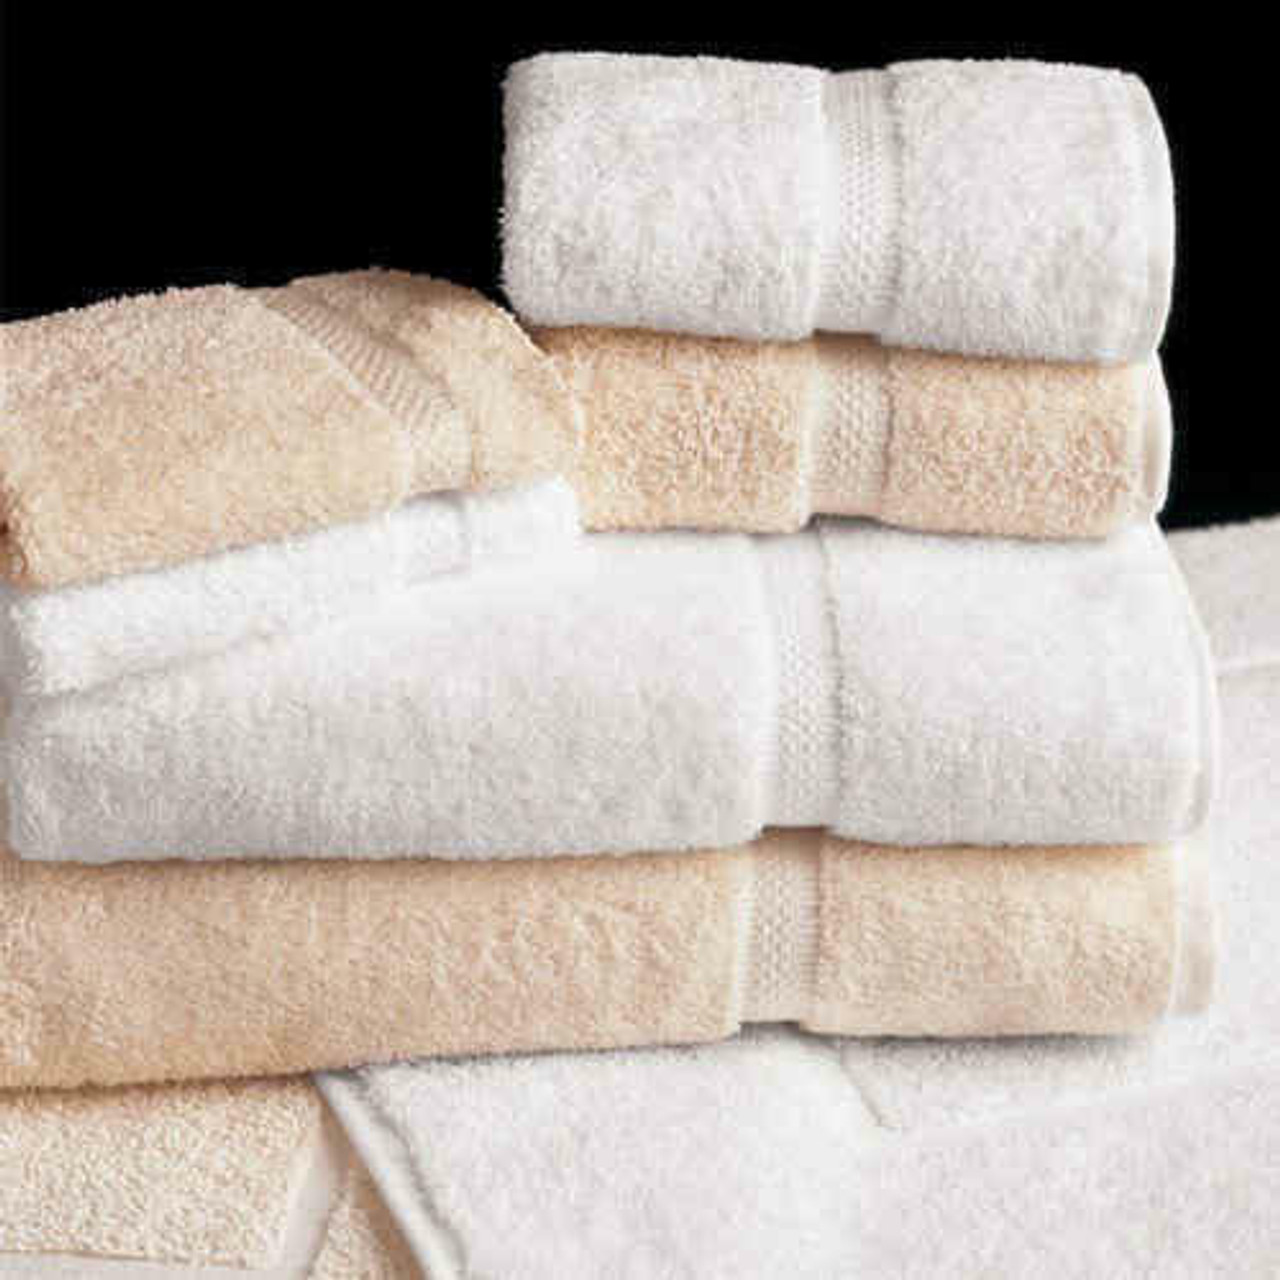 WestPoint/Martex Brentwood by Martex towels